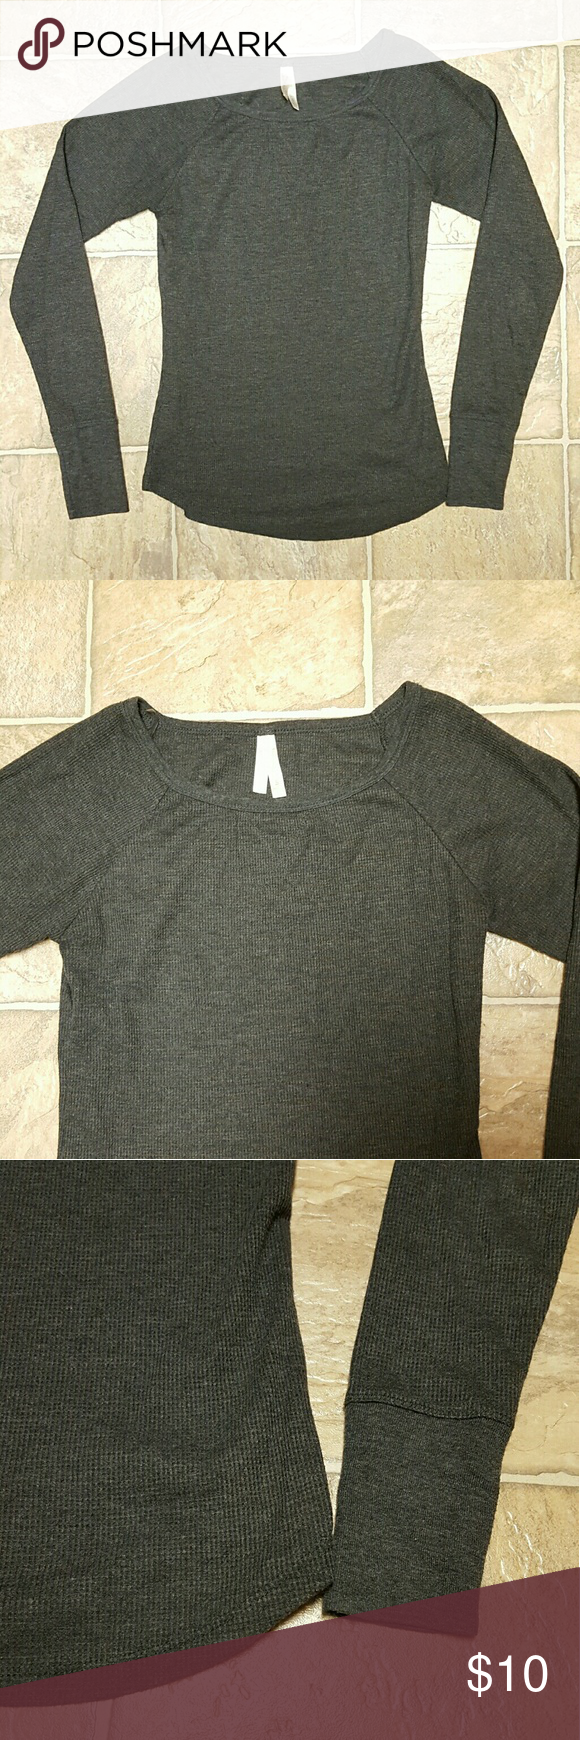 """Gray Long-sleeve Waffle Shirt Long sleeve waffle-knit shirt with a rounded hem. Material is not extremely thick - it's about as thick as any normal shirt, but it's still comfortable and warm. Worn a handful of times and has no defects! It's just a little too small for me now. Shirt also has stretch to it!   Width at waist: 13"""" Length from shoulder to shortest part of rounded hem: 20.5"""" Length from armpit to end of sleeve: 18""""  Price is firm, unless bundled! Color Story Tops Tees - Long…"""